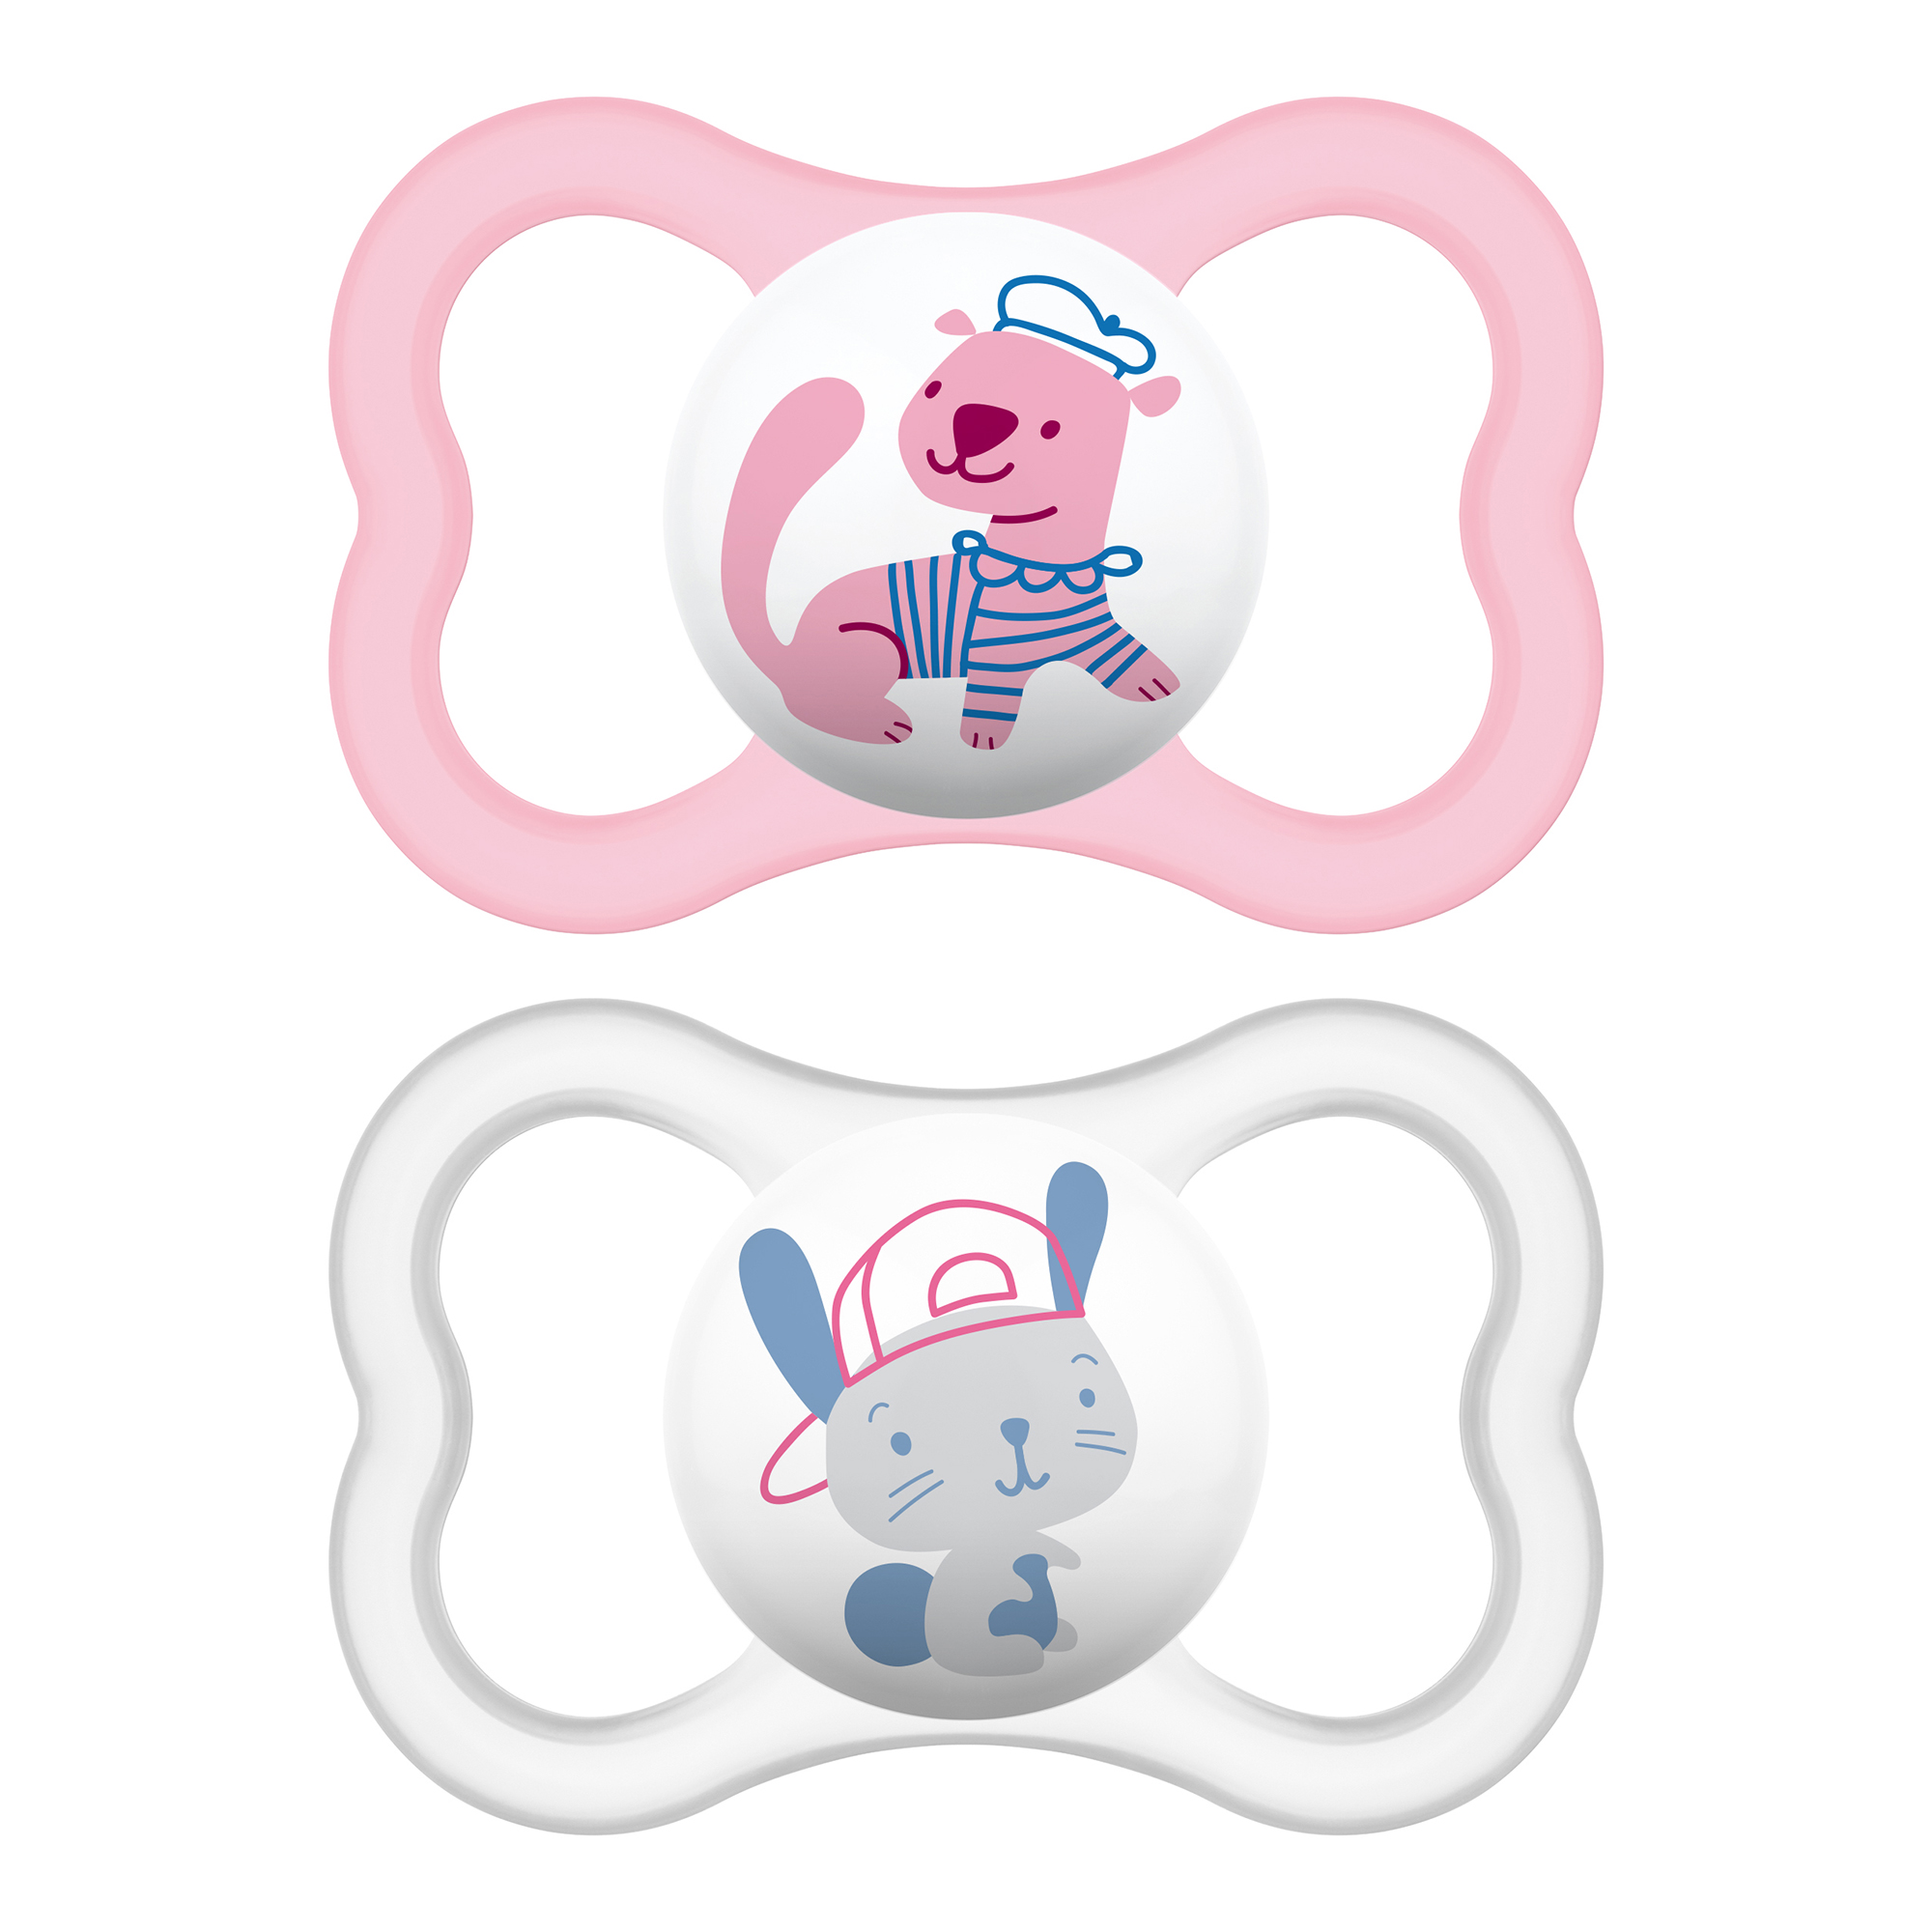 Unisex Baby Pacifier 16+ Months Air Night /& Day Design Collection Best Pacifier for Breastfed Babies MAM Sensitive Skin Pacifiers 3Count